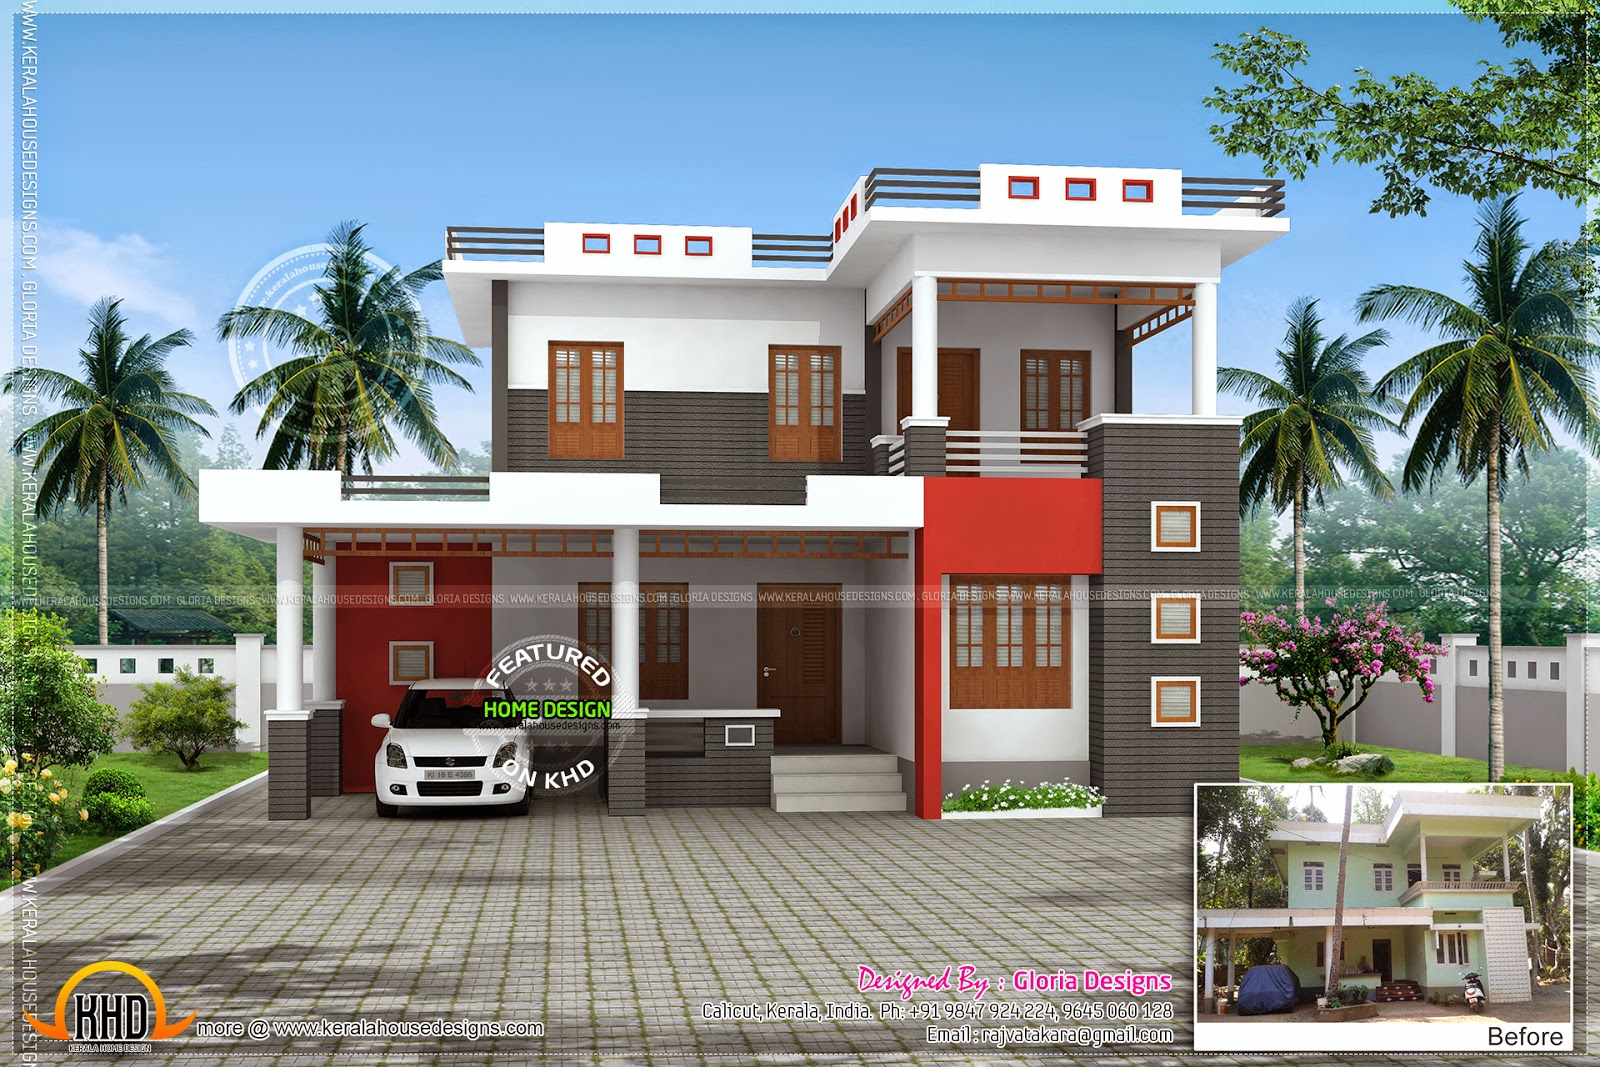 Renovation 3d model for an old house kerala home design for House plans kerala model photos